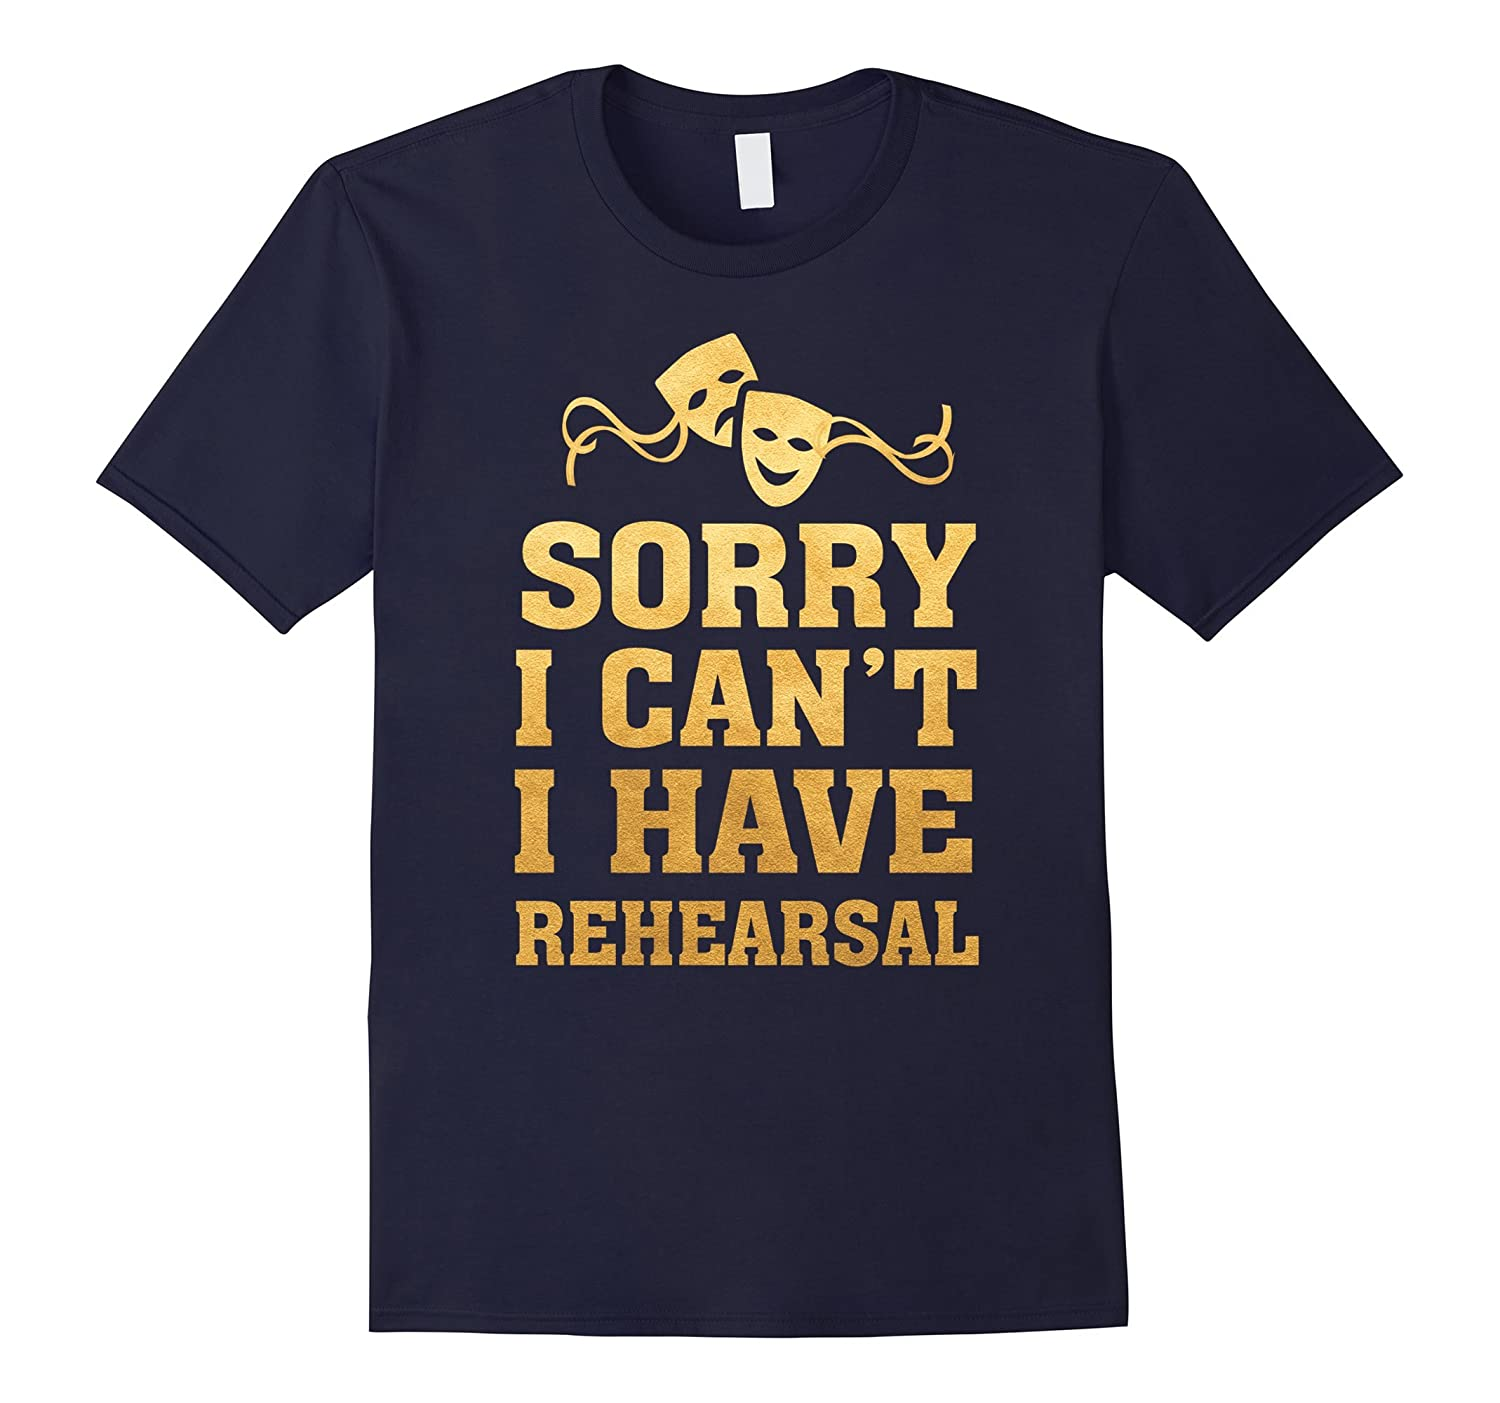 Theater People Funny T-Shirt -Sorry I Cant Gold Shirt-TD